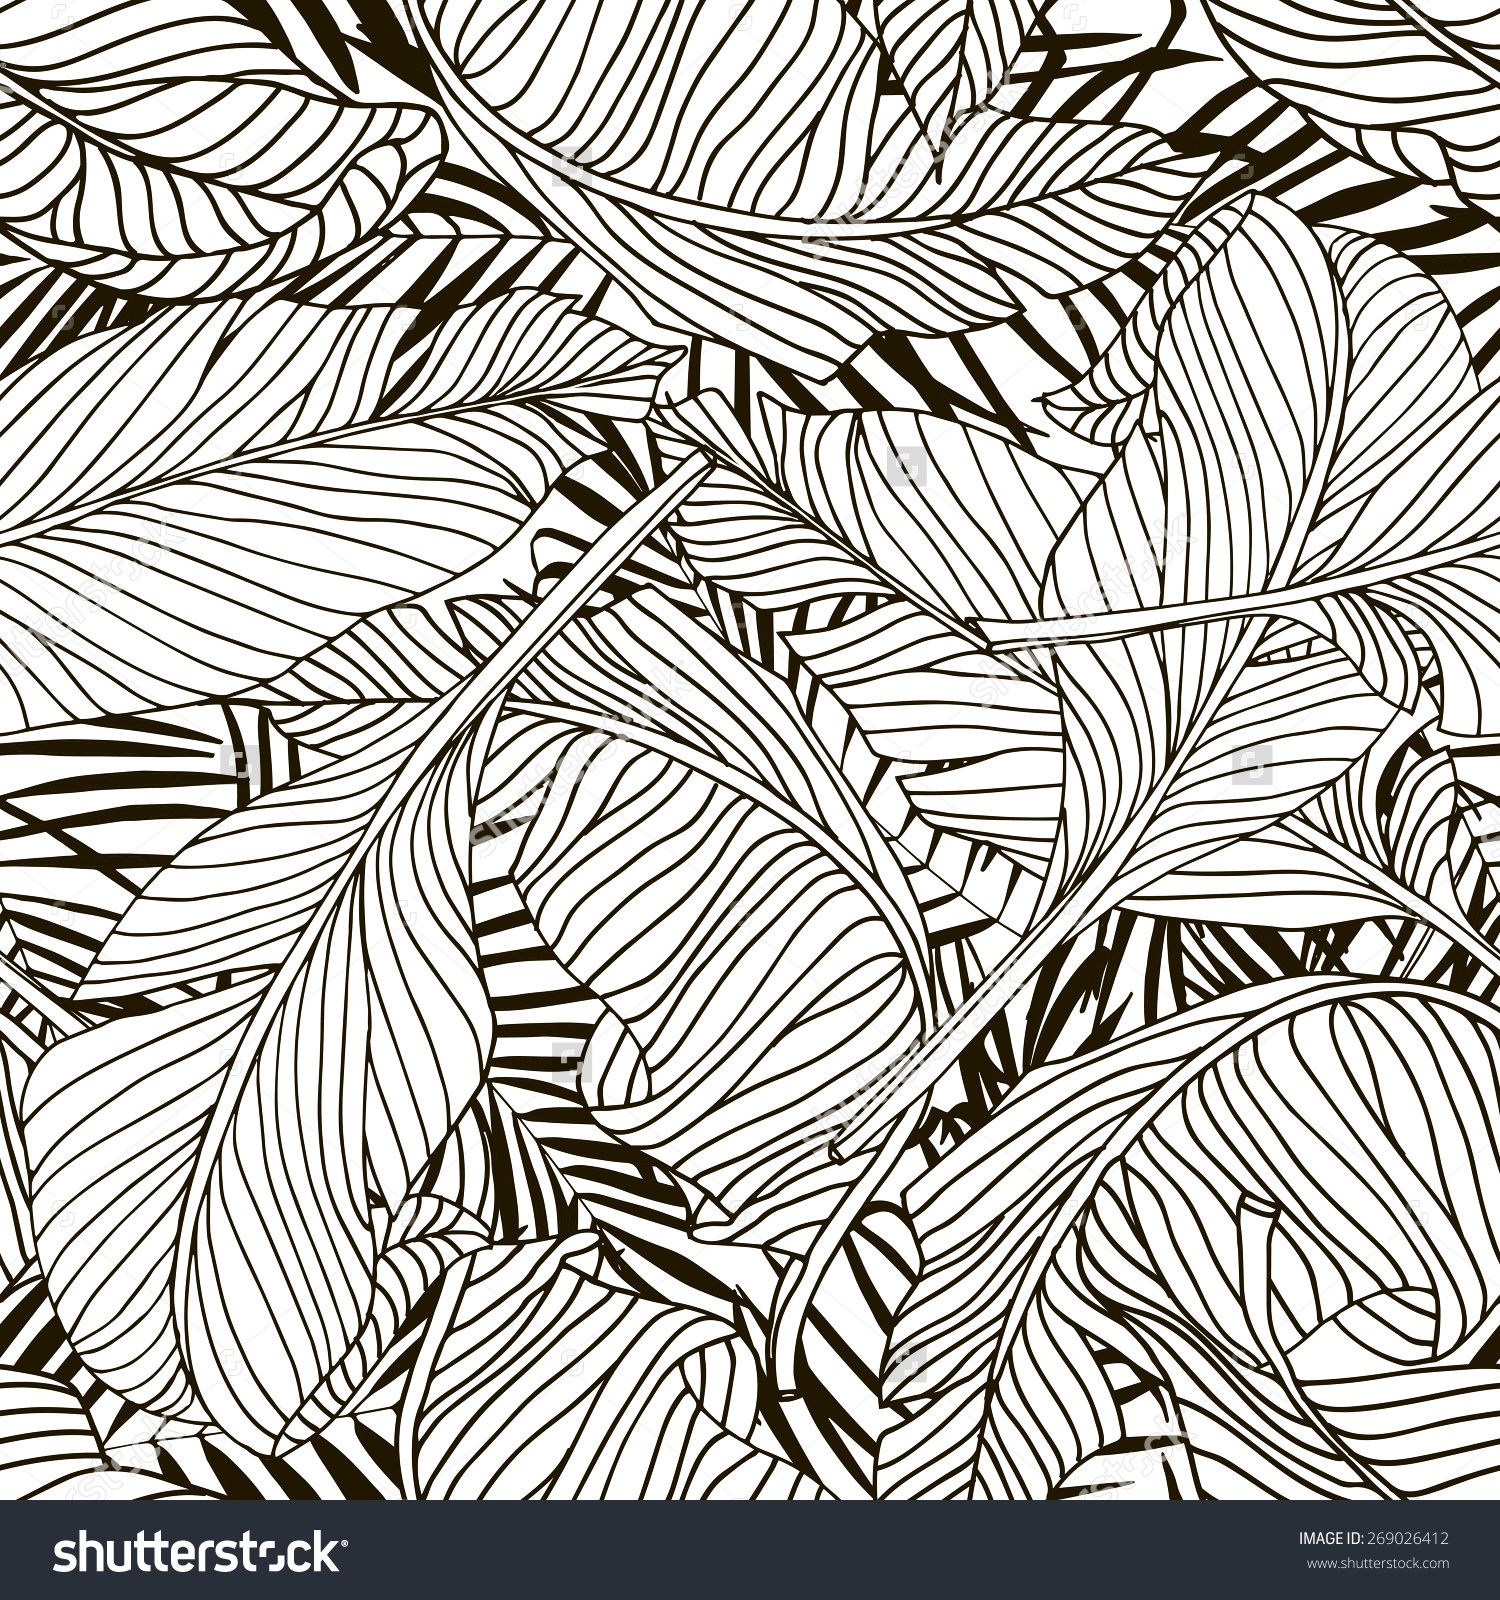 Tropical palm trees and banana leaves. Abstract background